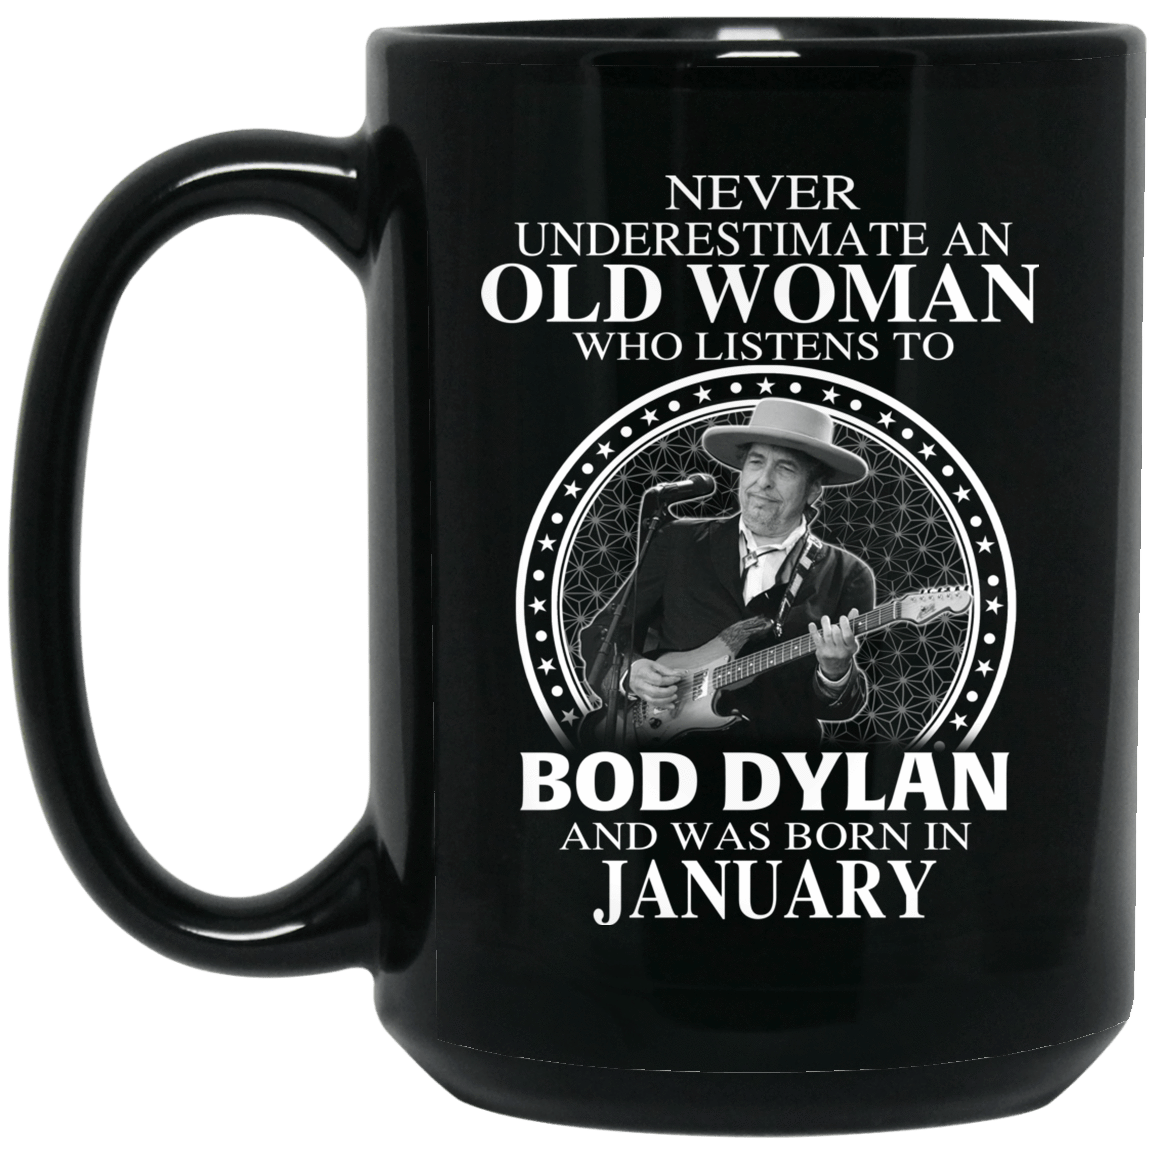 An Old Woman Who Listens To Bob Dylan And Was Born In January Mug 1066-10182-76154143-49311 - Tee Ript